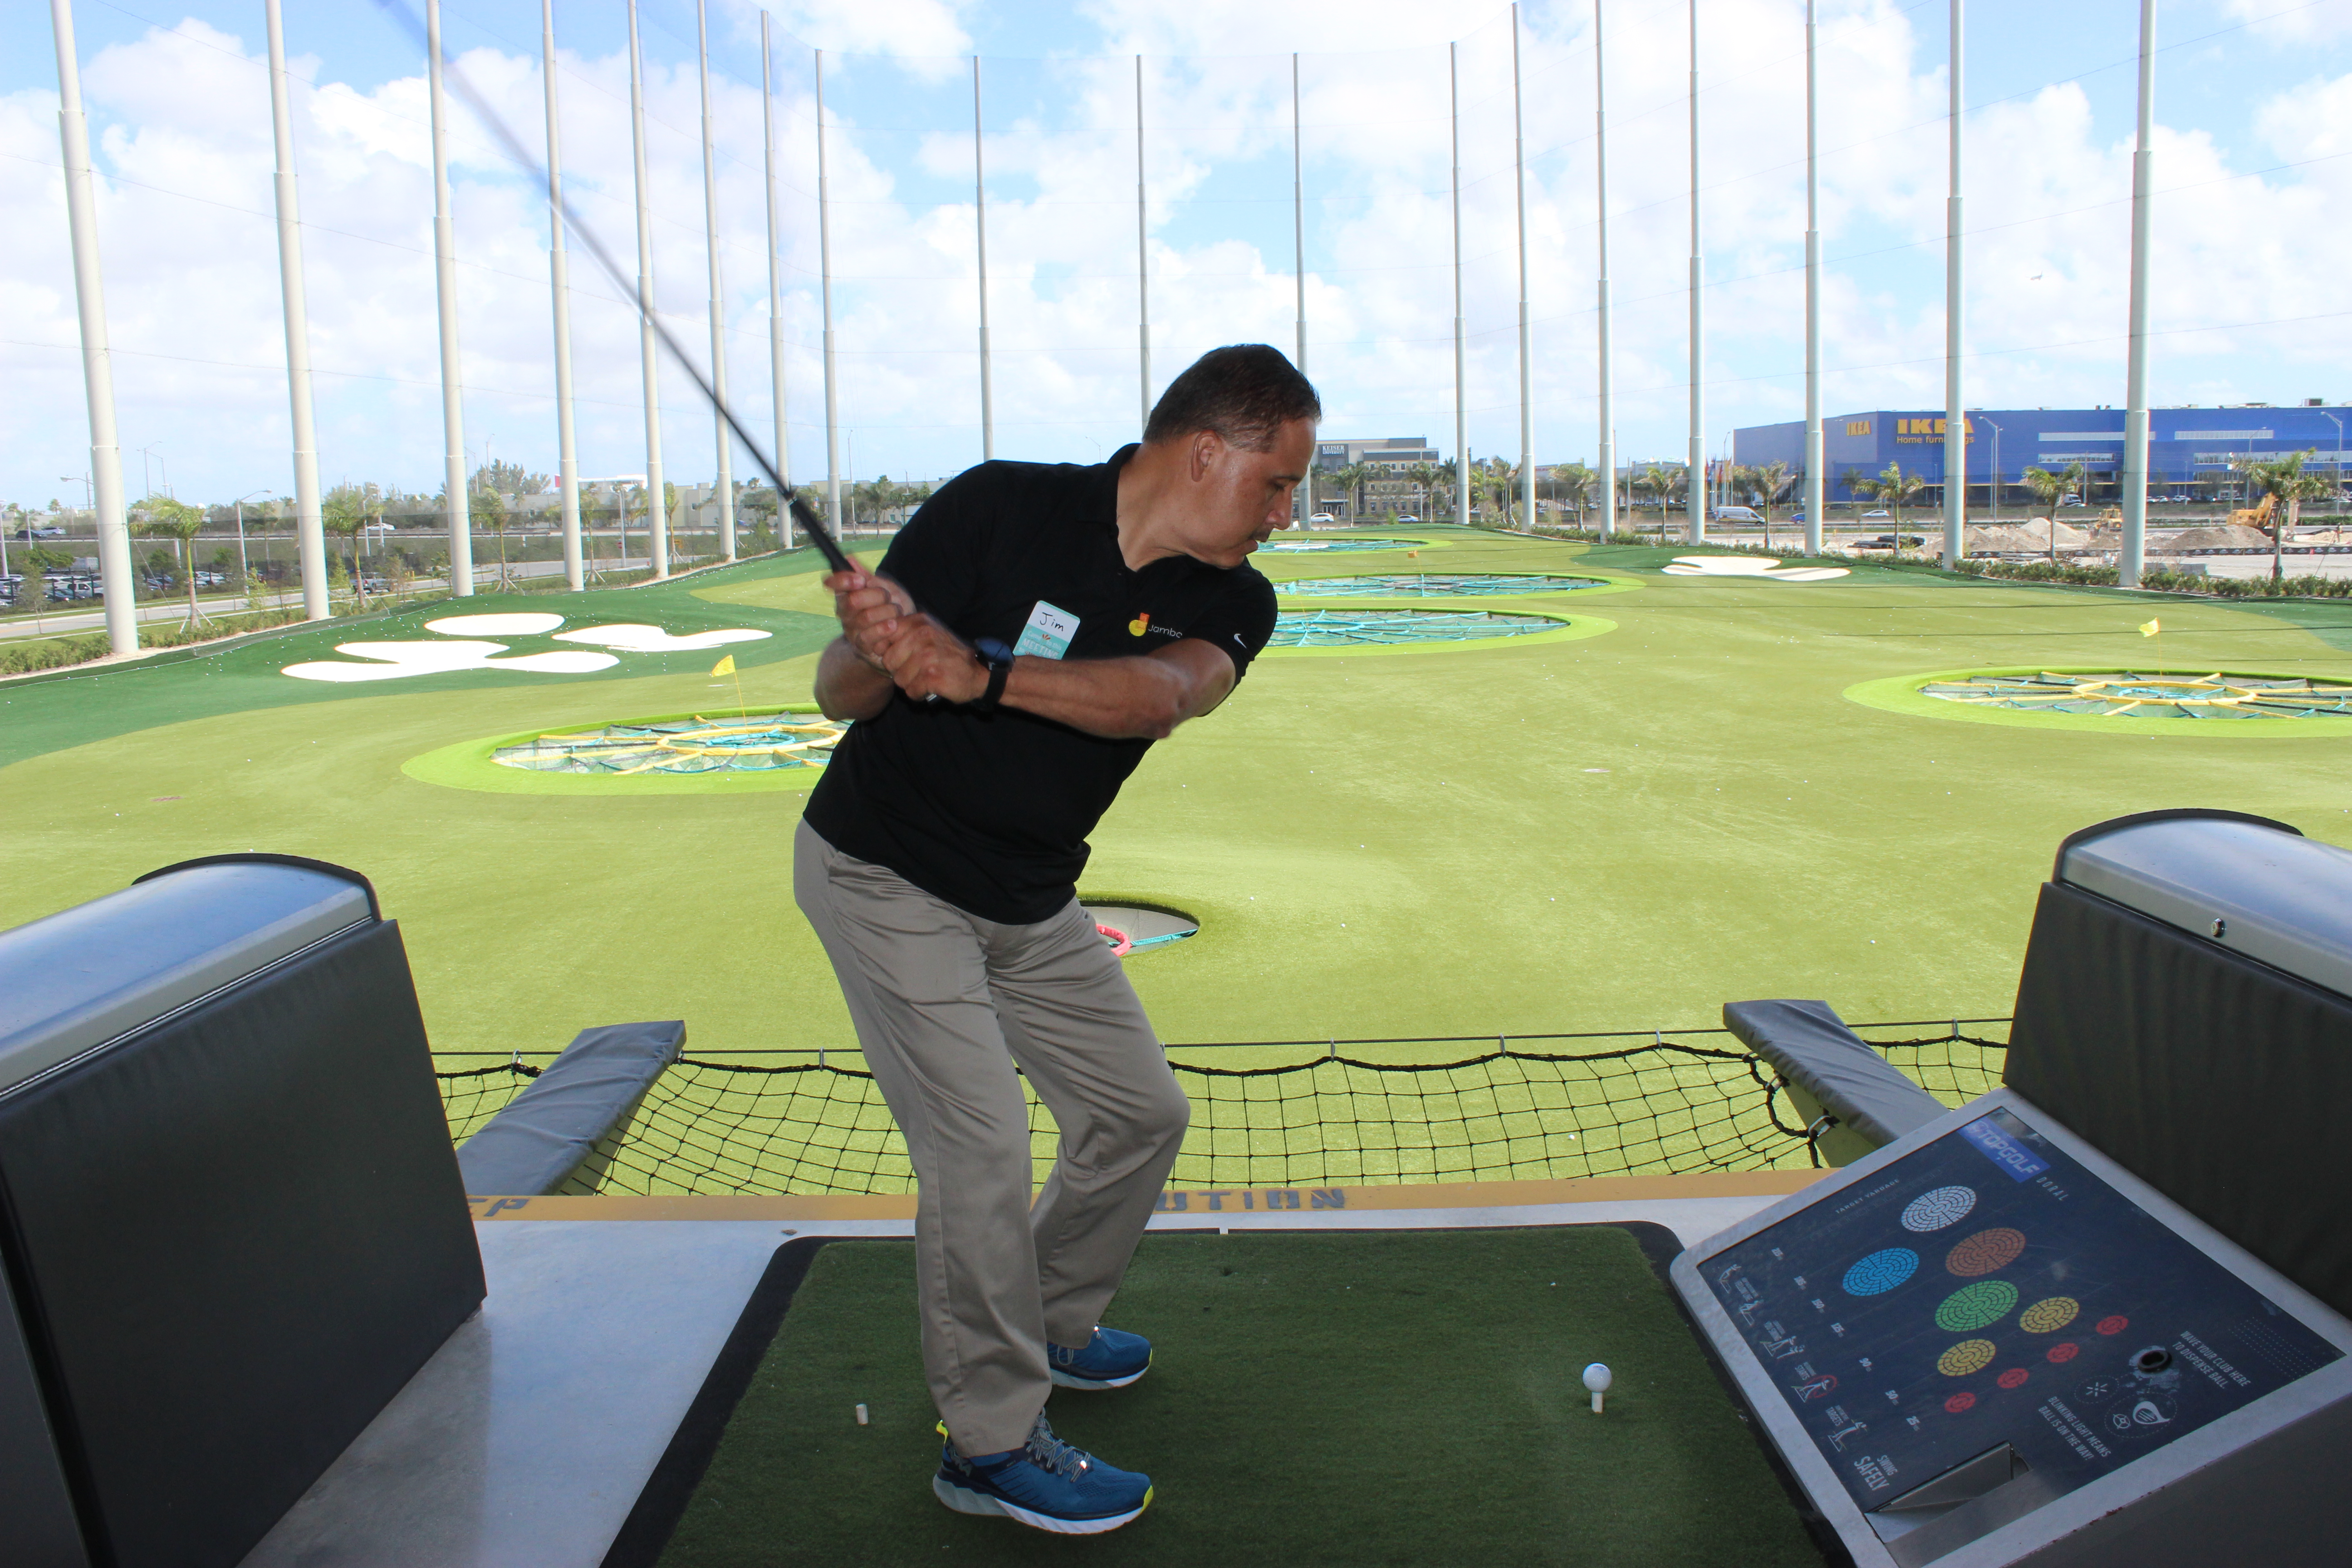 Doral Chamber of Commerce introduces a member playing golf at TopGolf Doral.